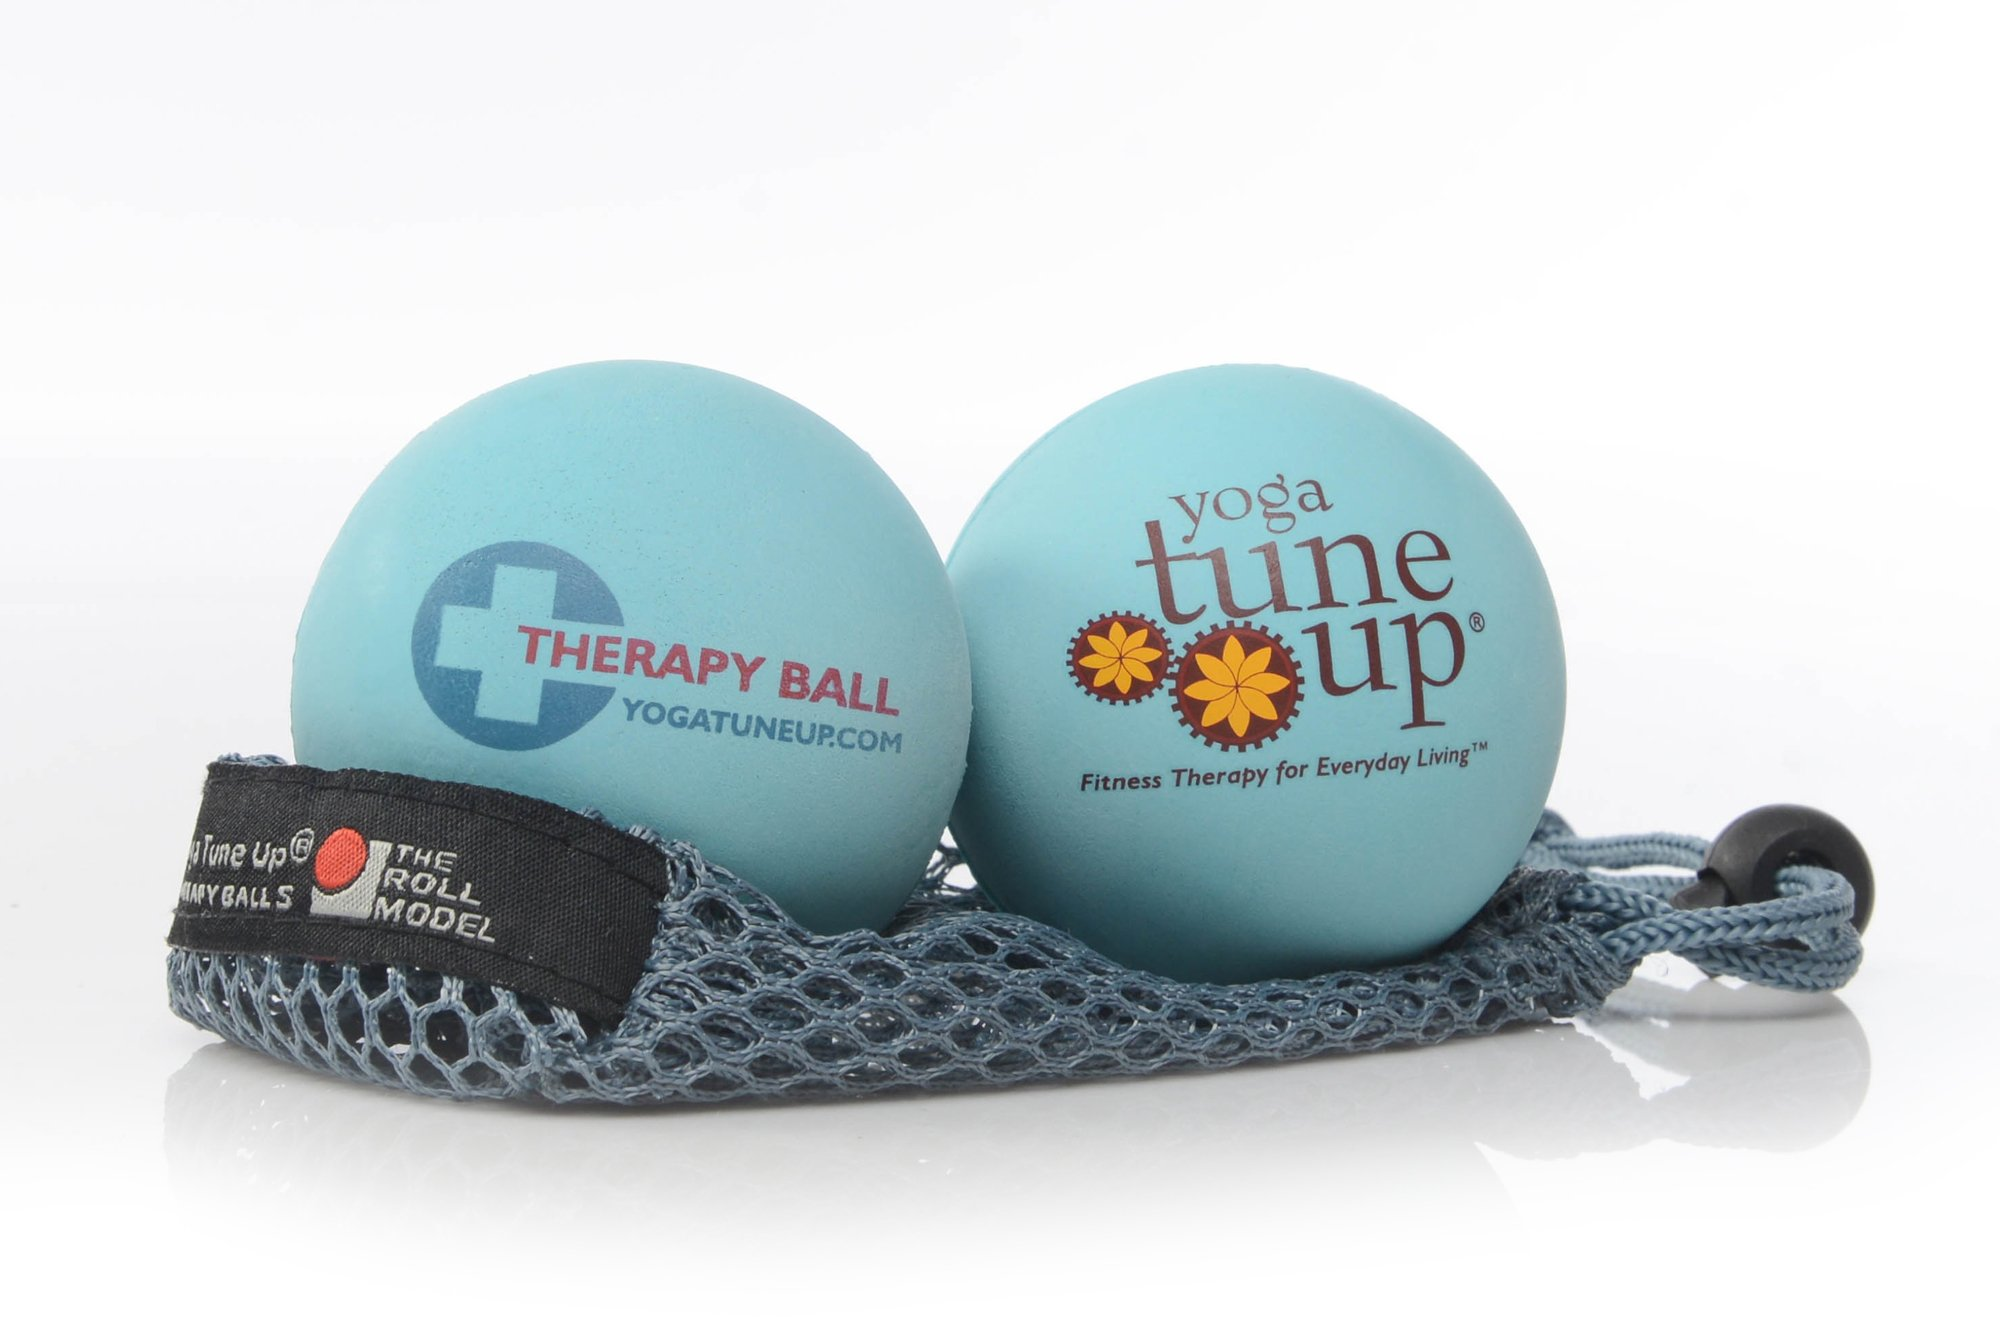 Yoga Tune Up Jill Miller's Therapy Balls Pair with Mesh Tote, Aqua Blue by YOGA TUNE UP